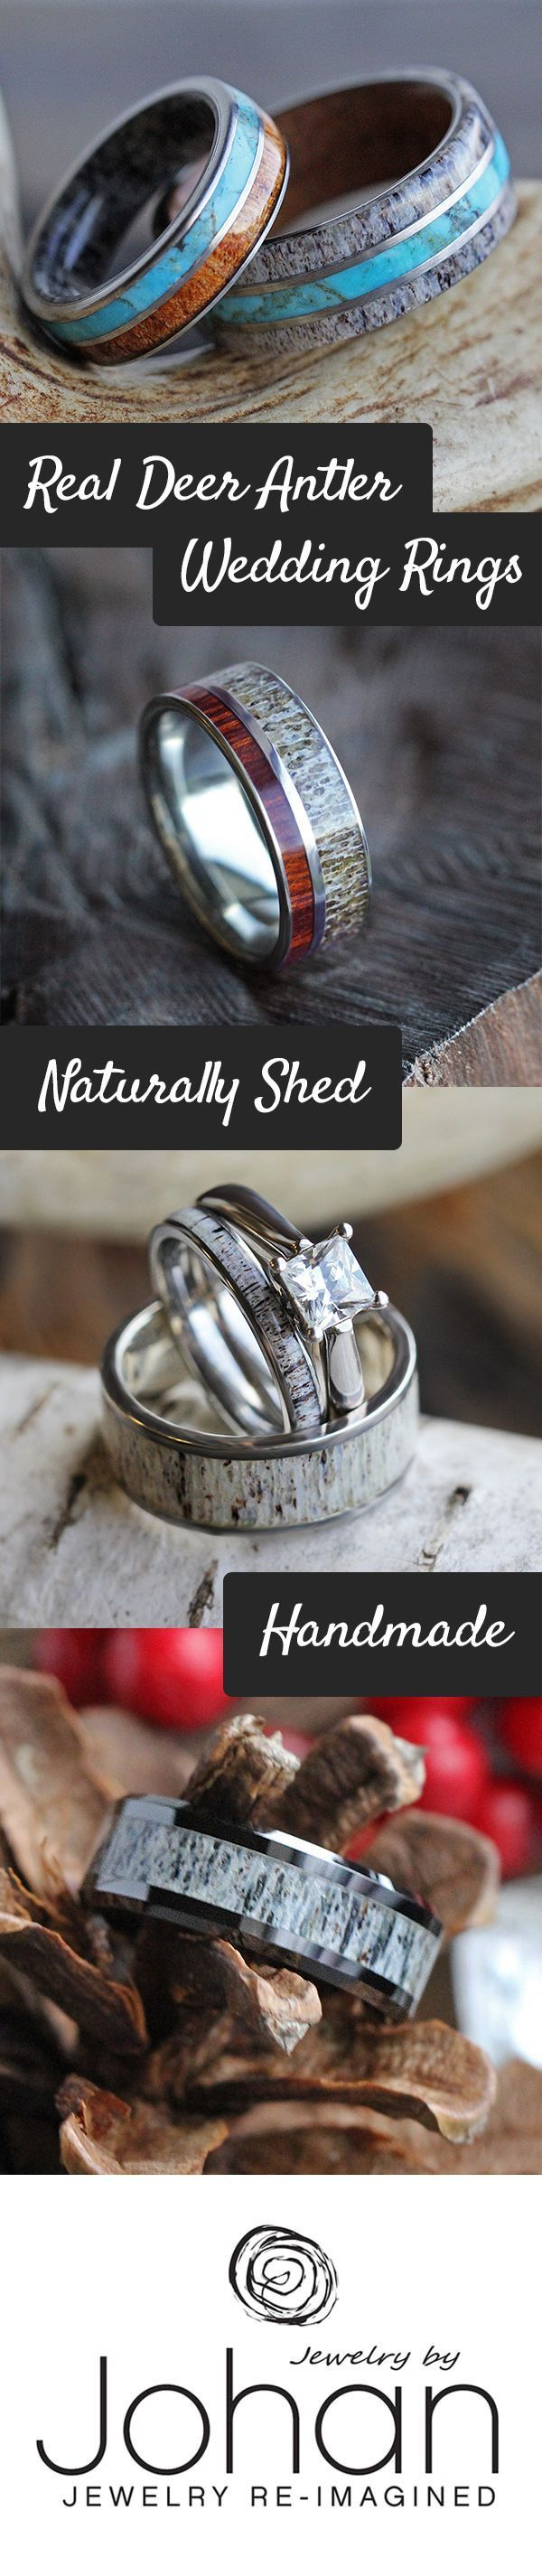 Natural deer antler wedding rings - perfect for outdoor enthusiasts and hunters! #weddingjewelry